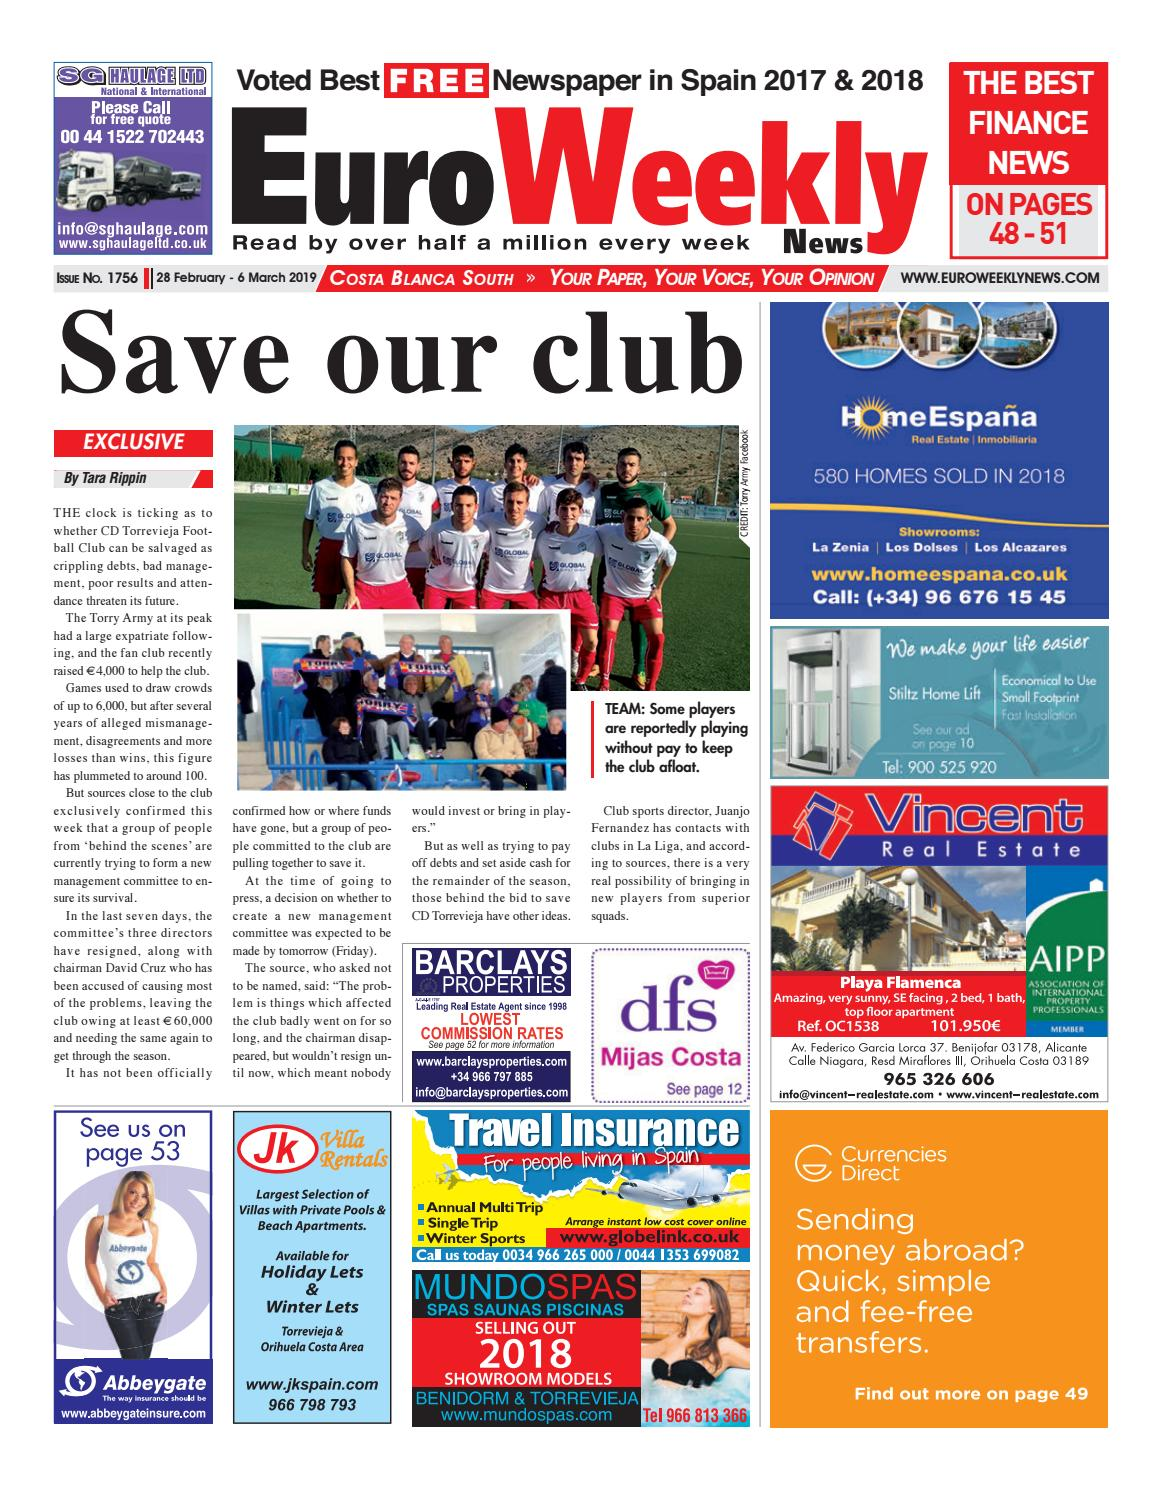 43 Libras En Euros Euro Weekly News Costa Blanca South 28 February 6 March 2019